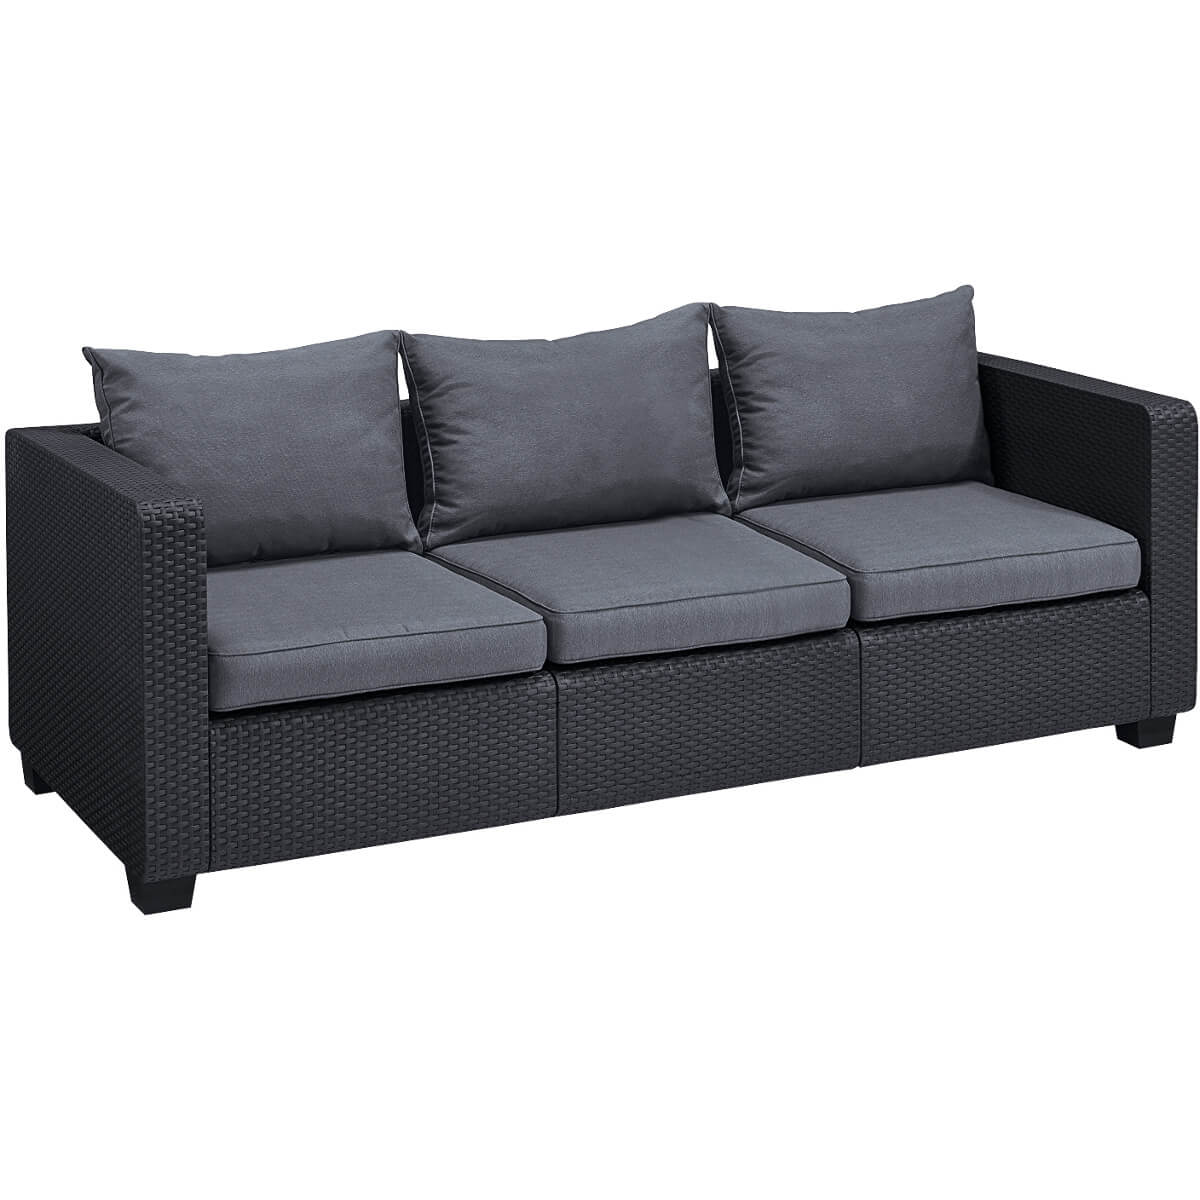 Диван Allibert Salta 3 Seater Sofa 17206018